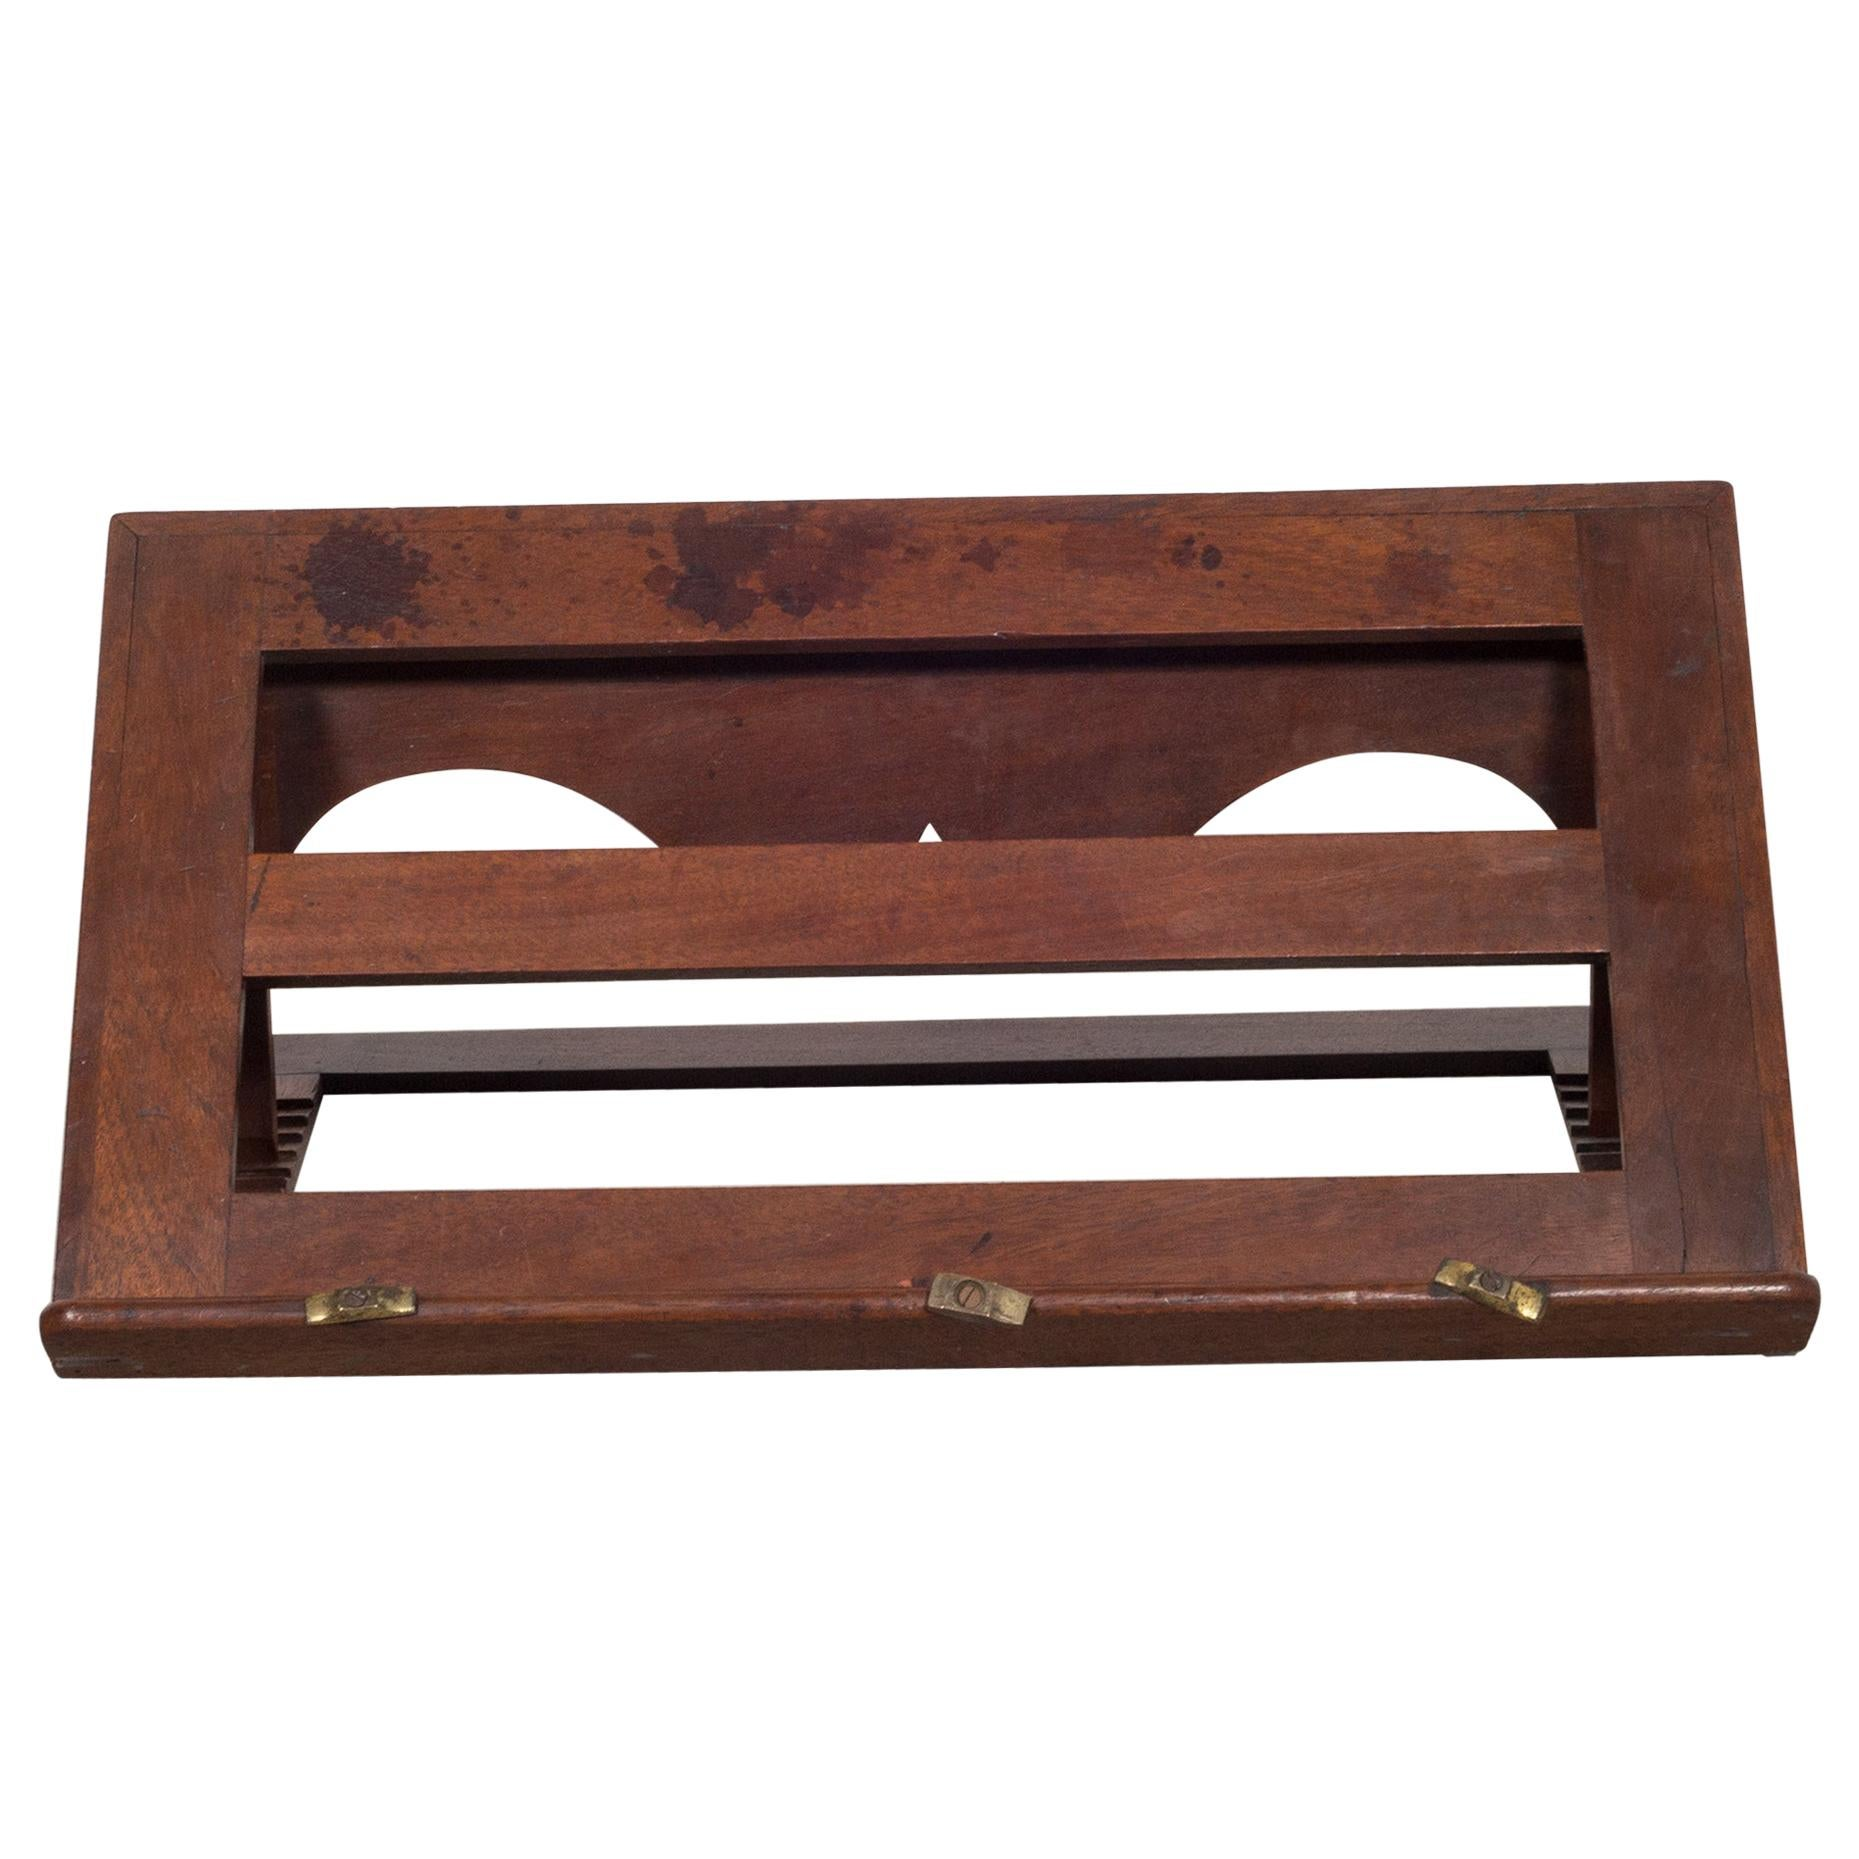 19th c. Mahogany and Brass Book Stand, c.1800s